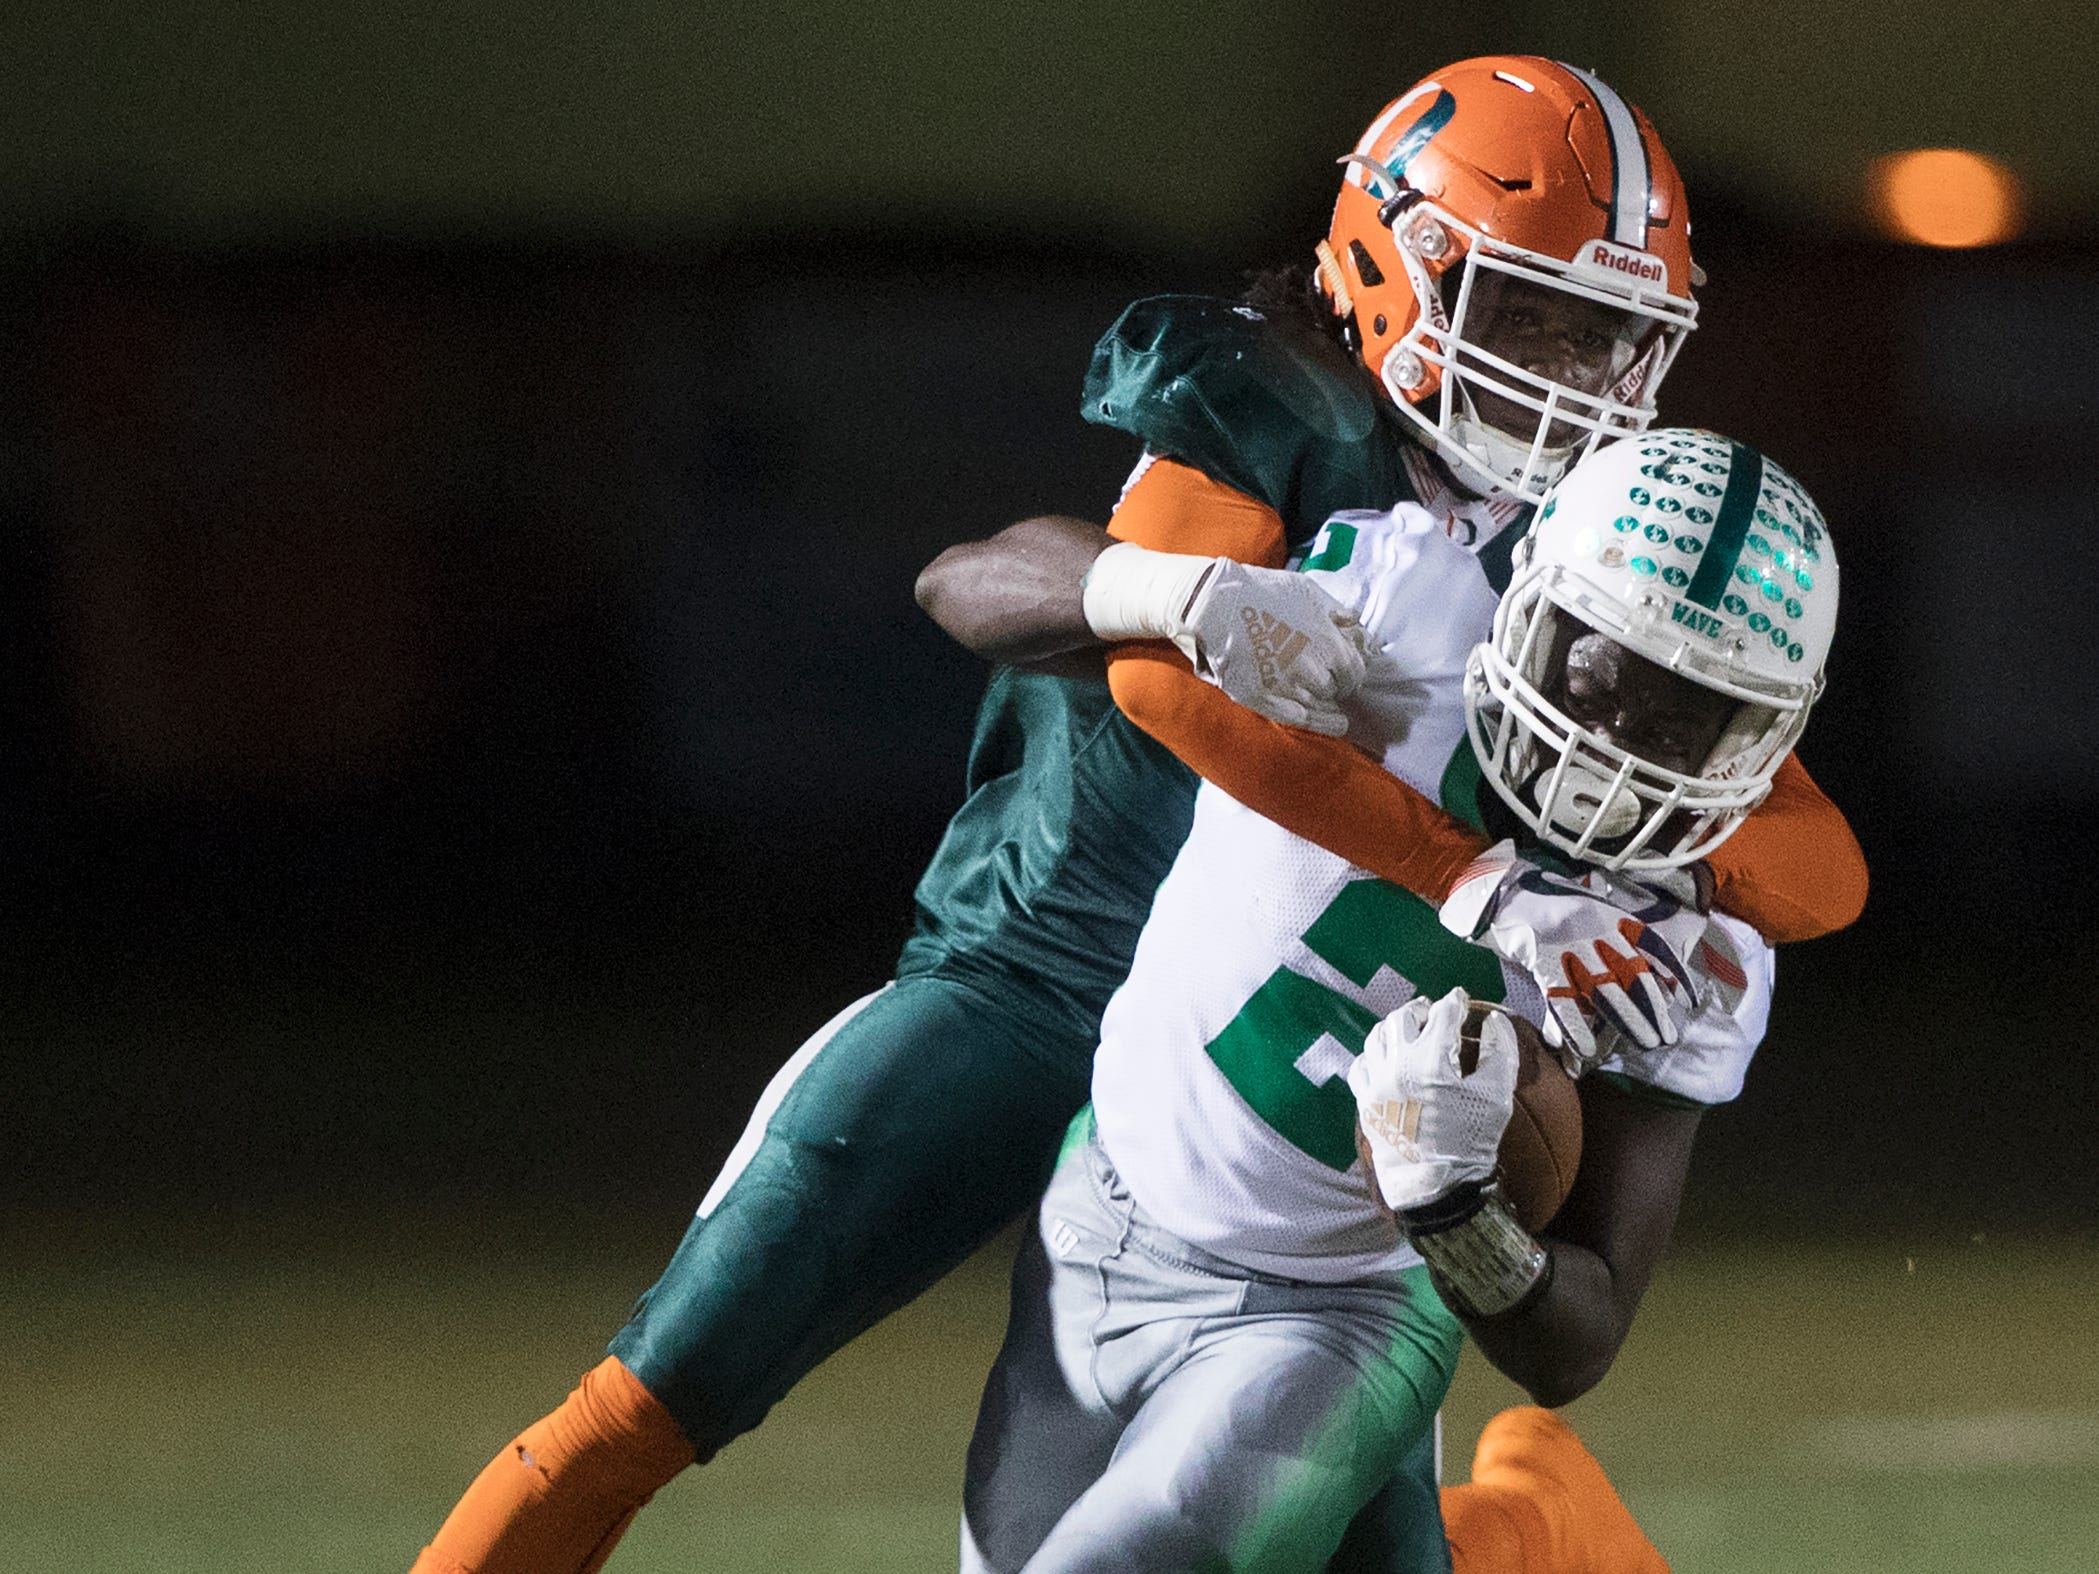 Fort Myers High School's Yasias Young is tackled by DunbarÕs Jeremiah Livingston recently at Dunbar in Fort Myers. Dunbar beat Fort Myers 19-11.